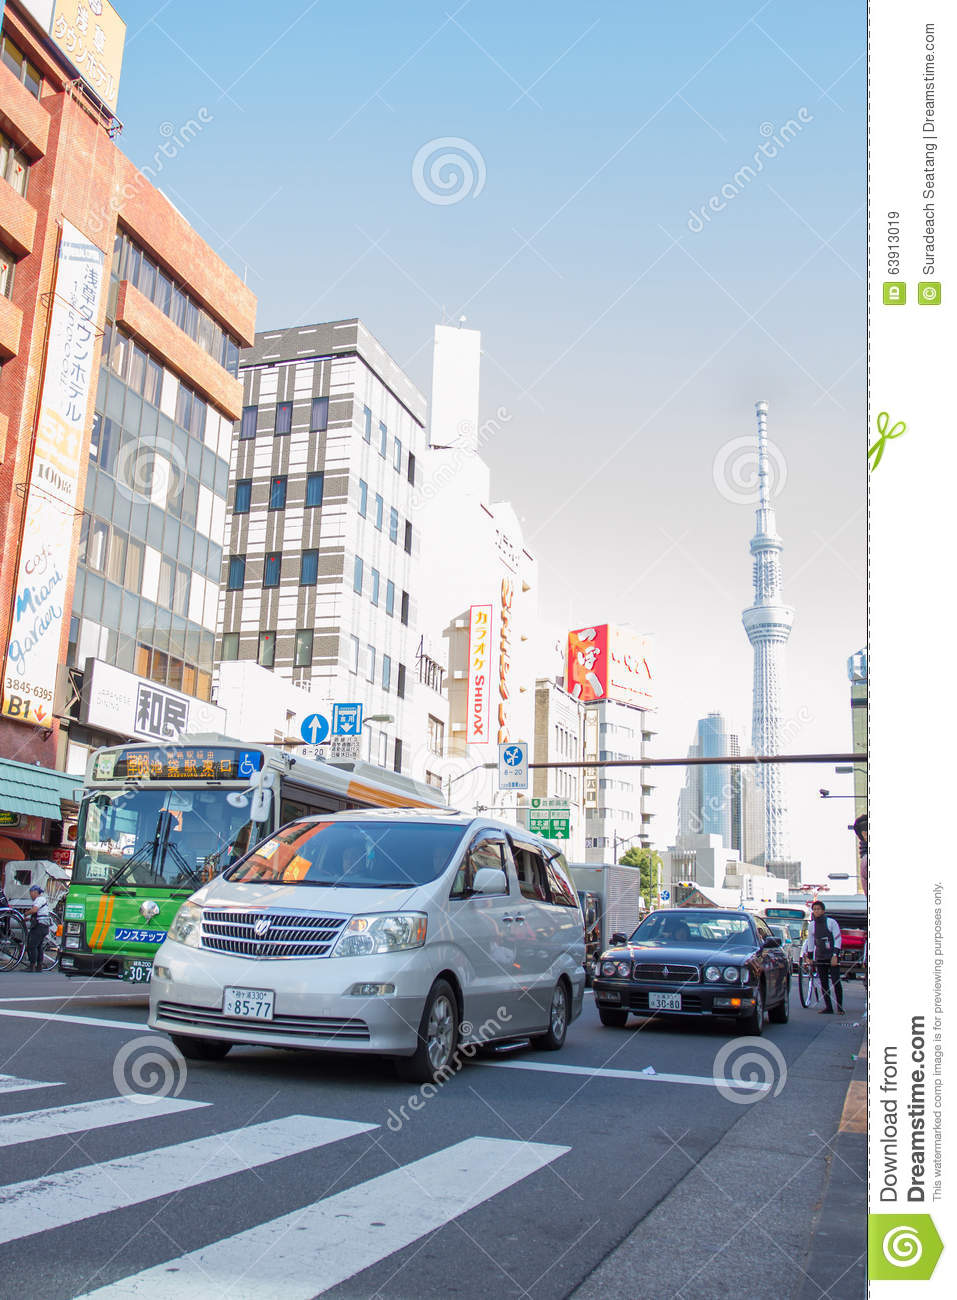 Cars On A Street In Asakusa, Taito, Tokyo Japan Editorial Stock Image - Image...